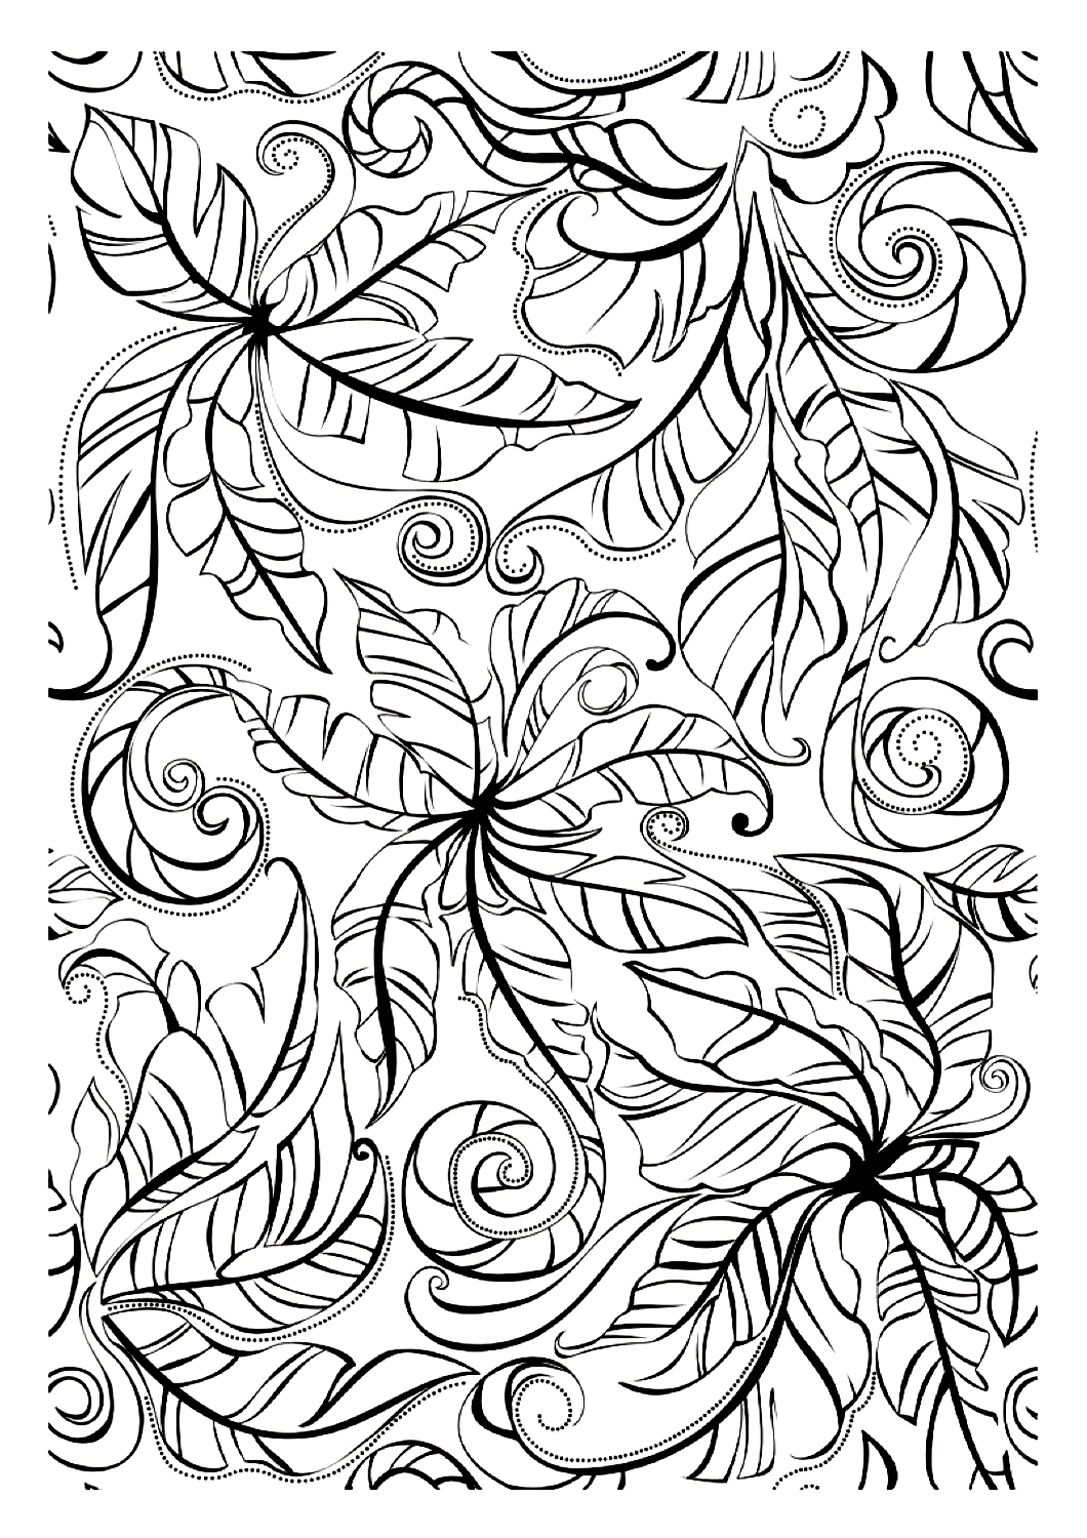 Lovely leaves - Flowers Adult Coloring Pages